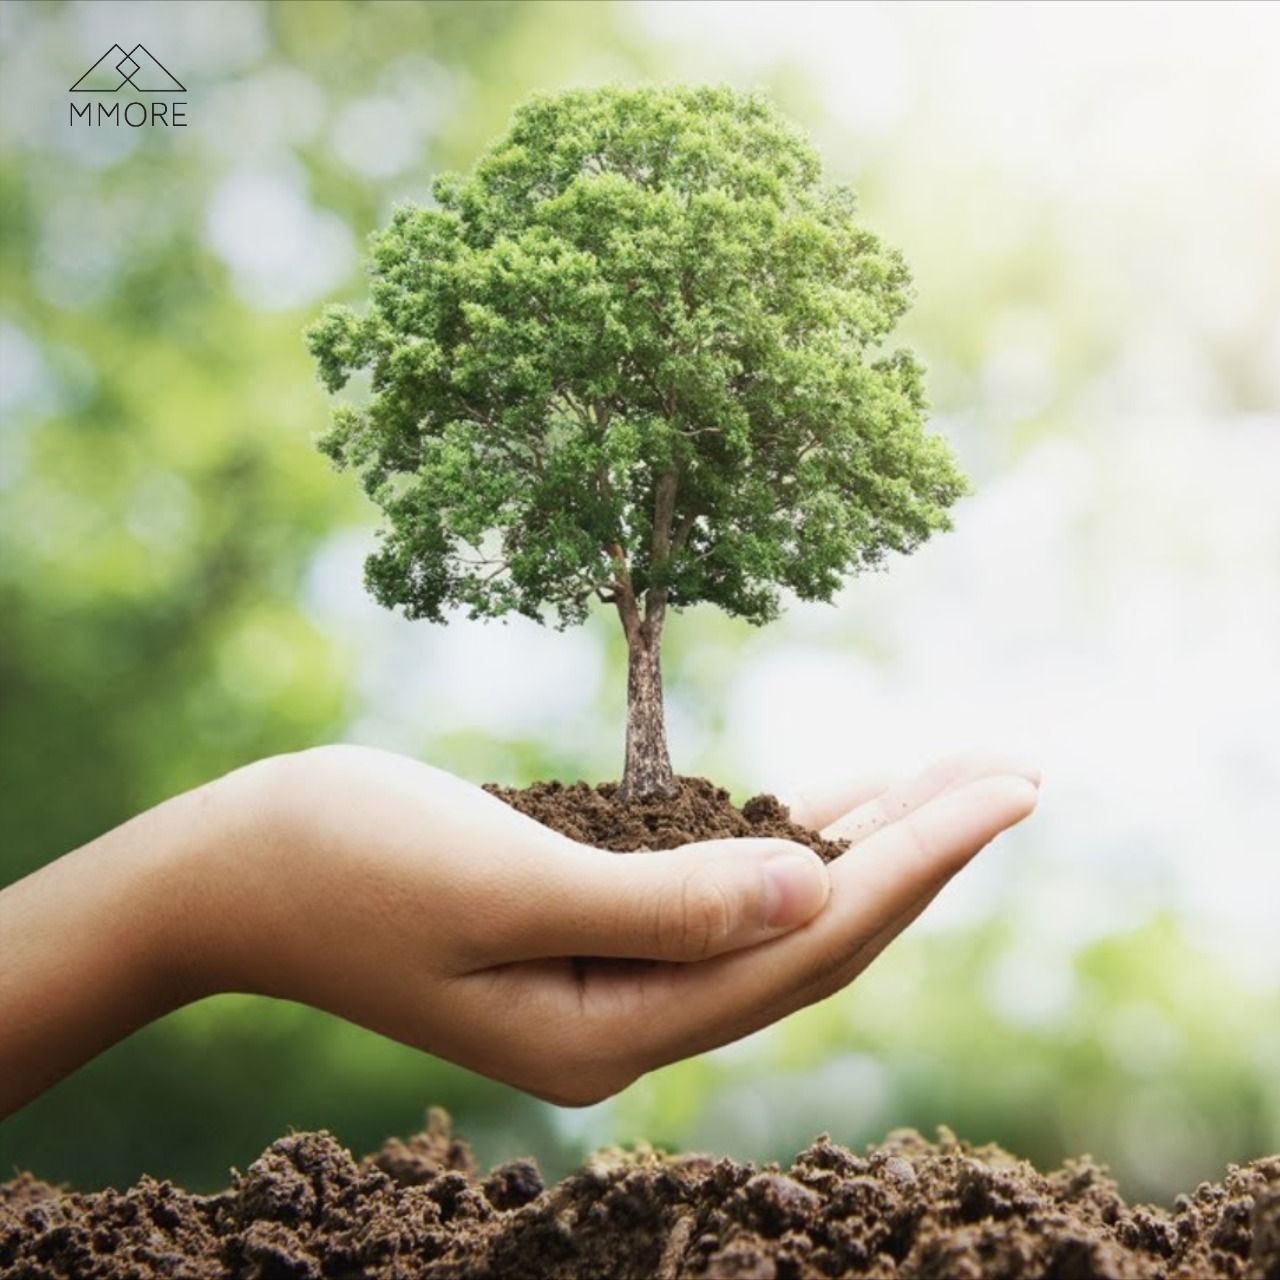 9 Reasons To Plant A Tree Blog Plant Trees Save The Earth Giving Back To Nature Trees To Plant Save Earth Tree Planting Quotes